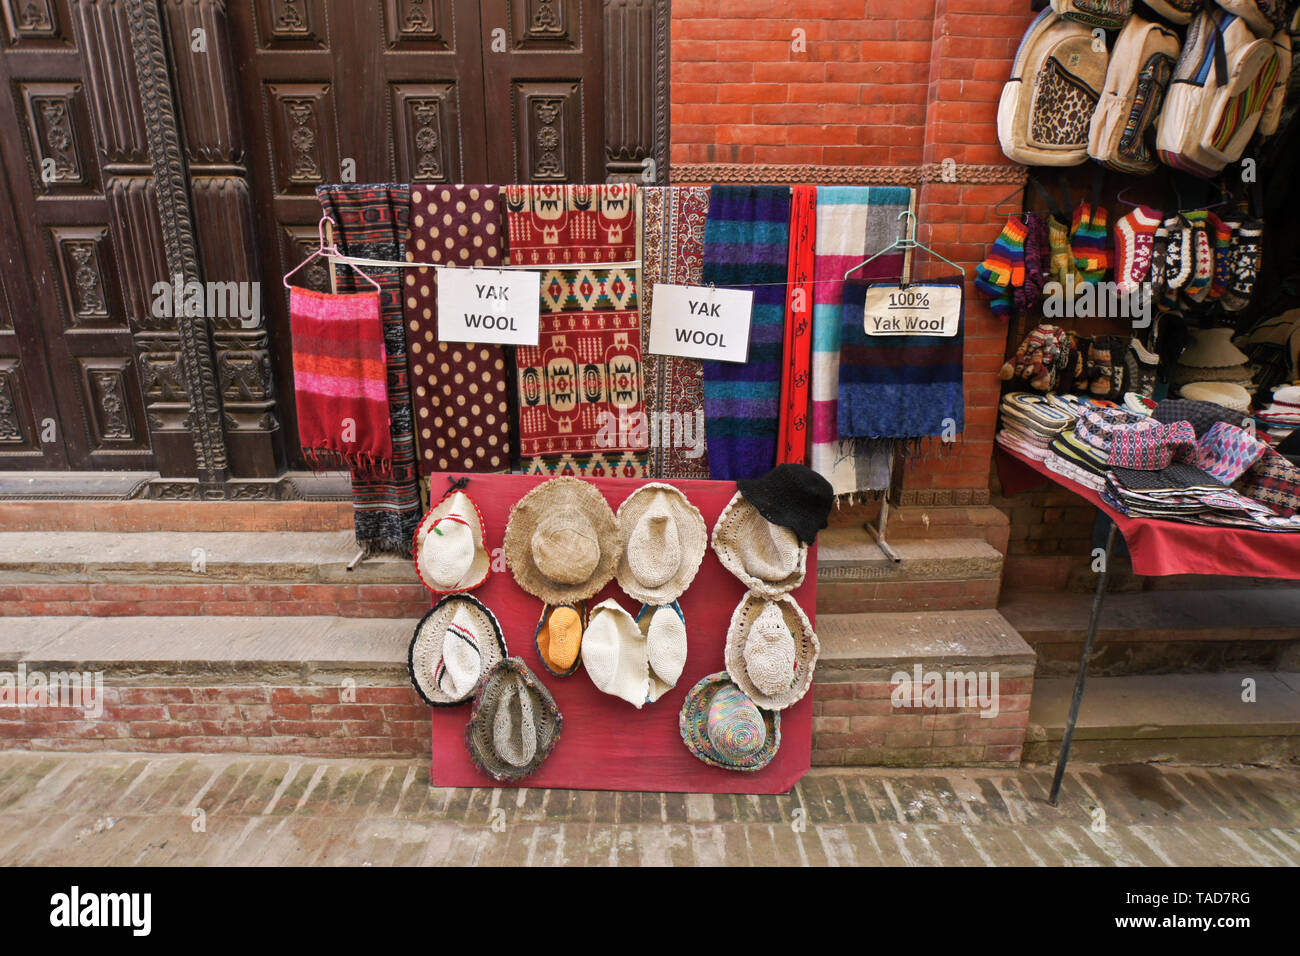 Handicrafts and souvenirs are for sale in a narrow alley off Durbar Square, Bhaktapur, Kathmandu Valley, Nepal - Stock Image